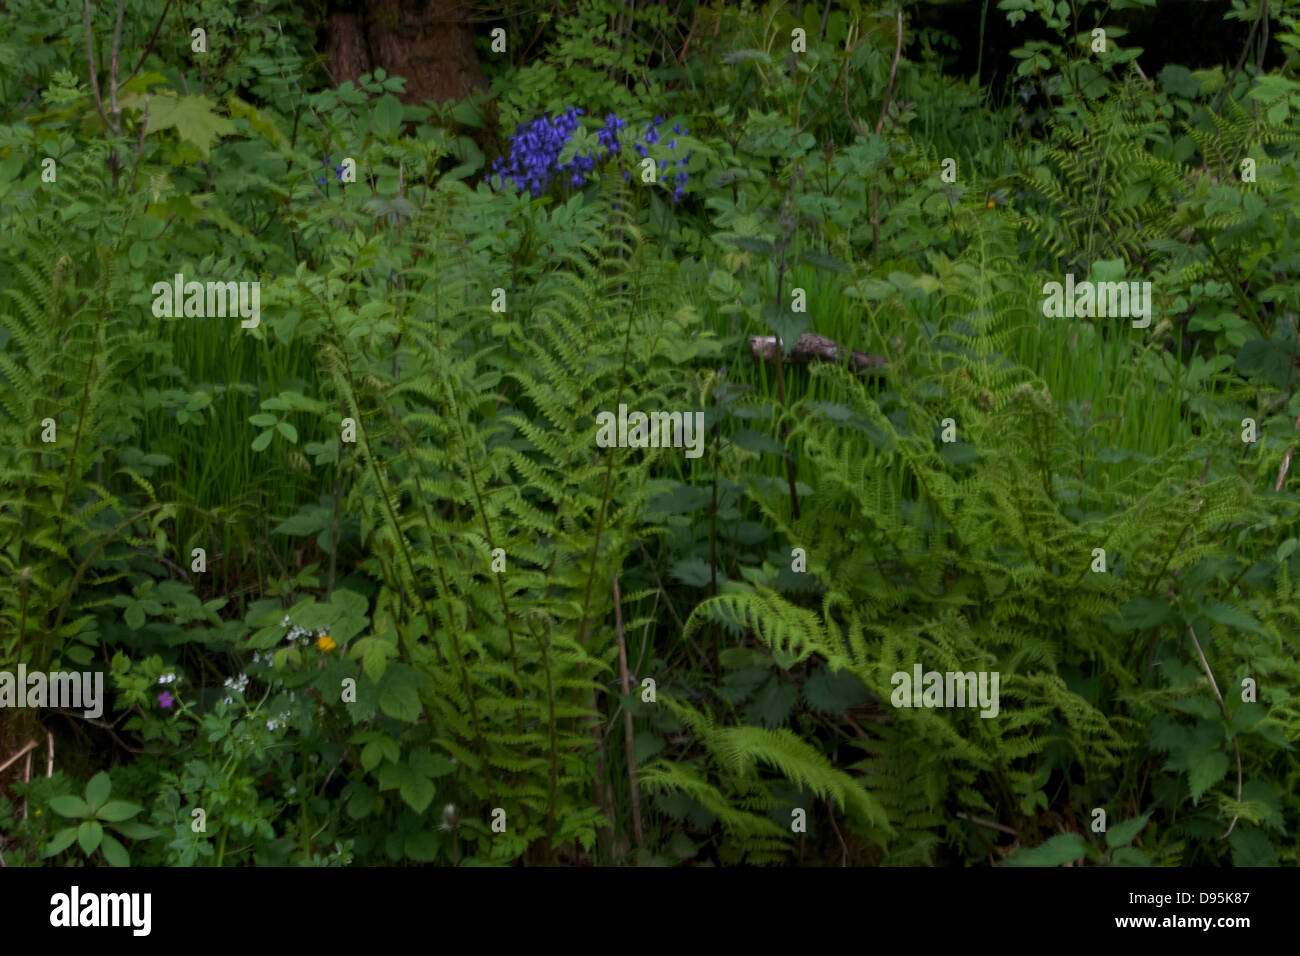 Bluebells in a woodland setting - Stock Image